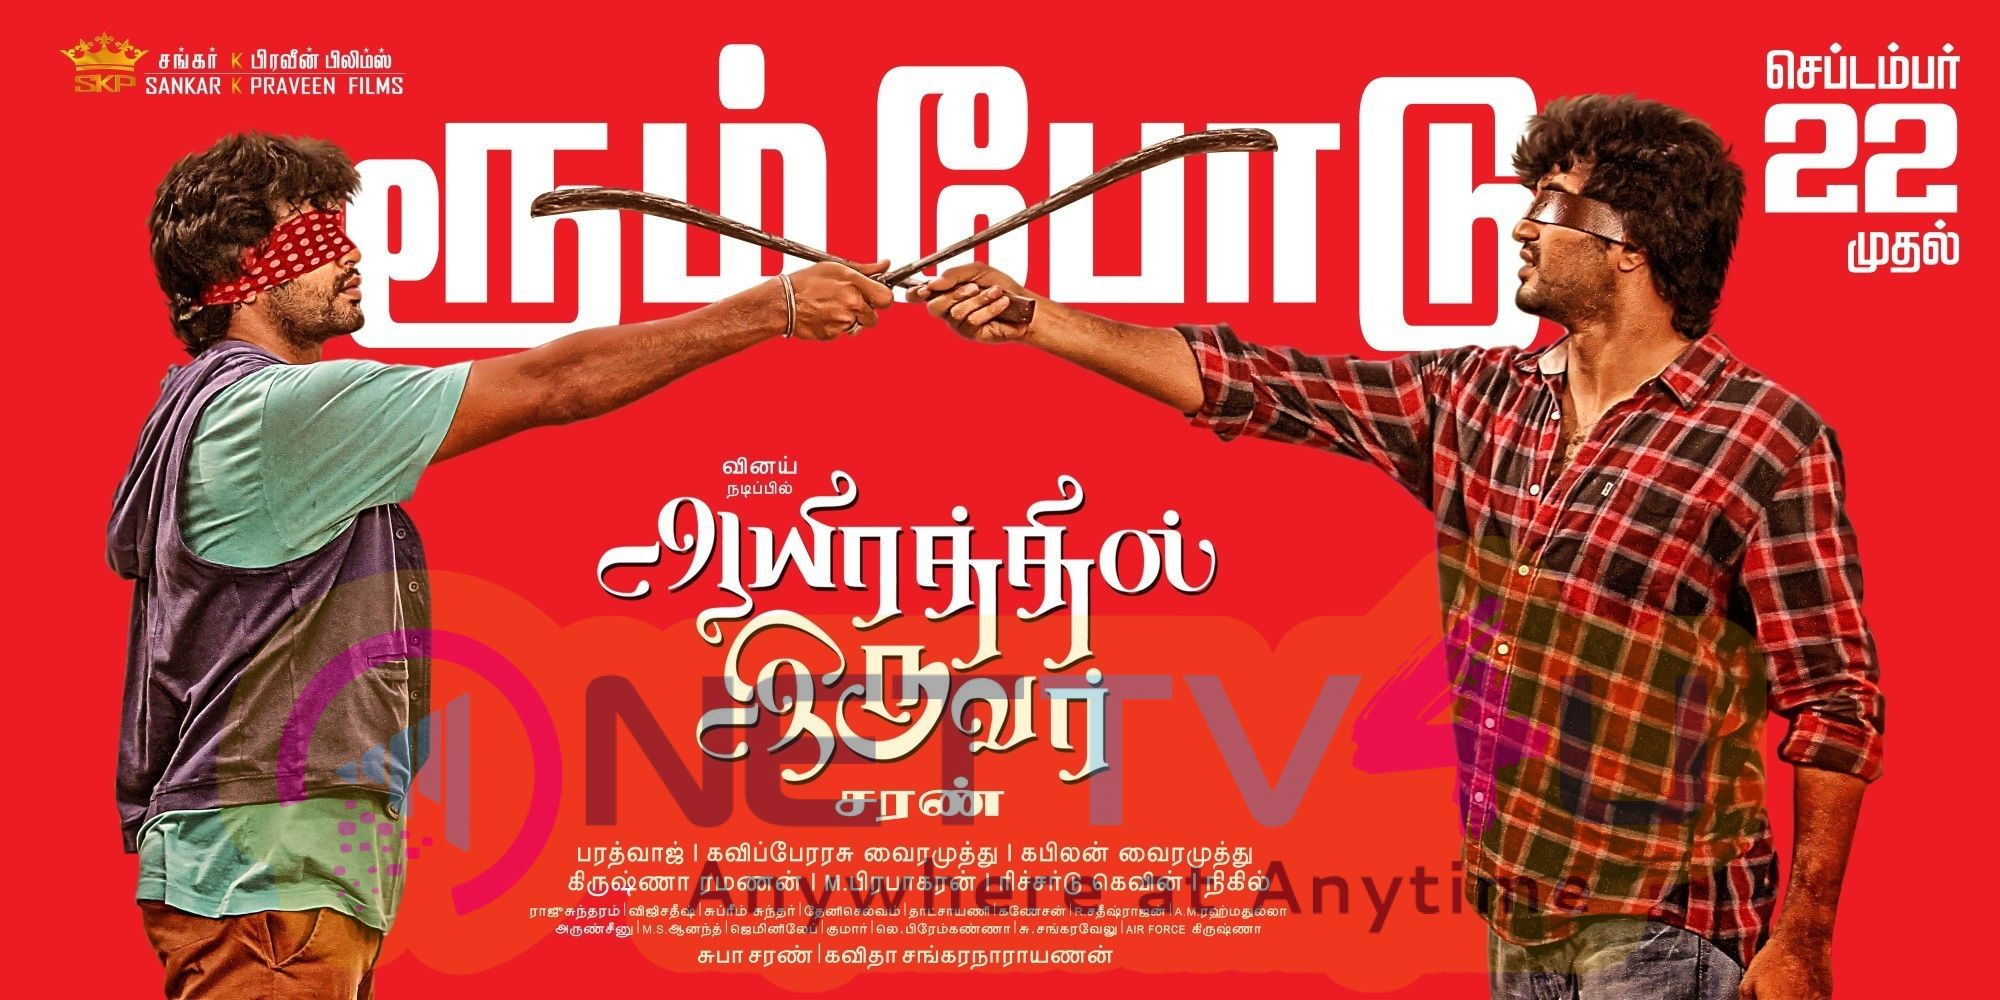 Aayirathil Iruvar Movie Releasing On September 22nd Posters Tamil Gallery